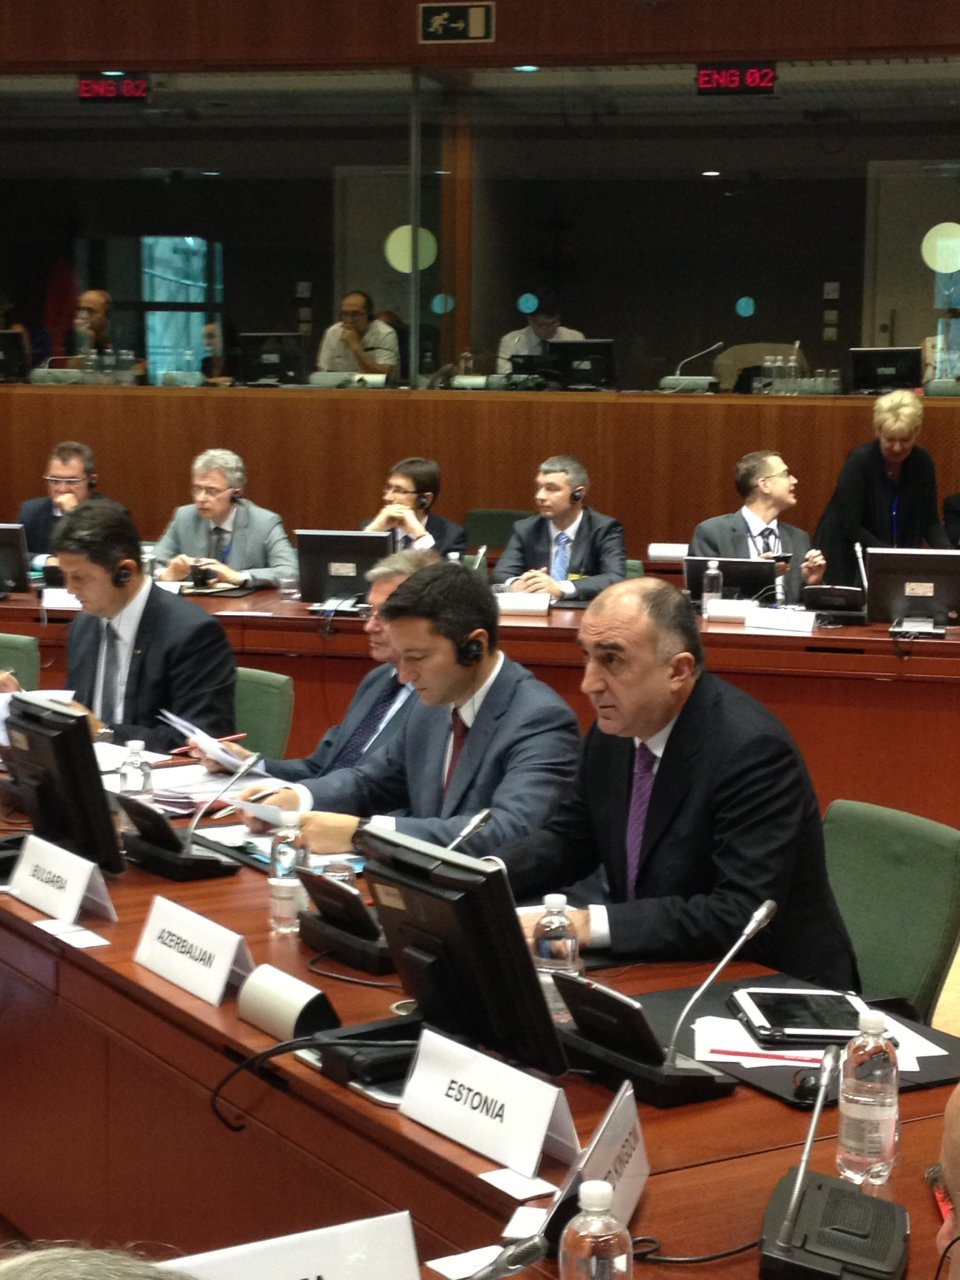 Photo: Azerbaijan urges EU to end illegal trading practices of Armenia in occupied territories / Nagorno-karabakh conflict